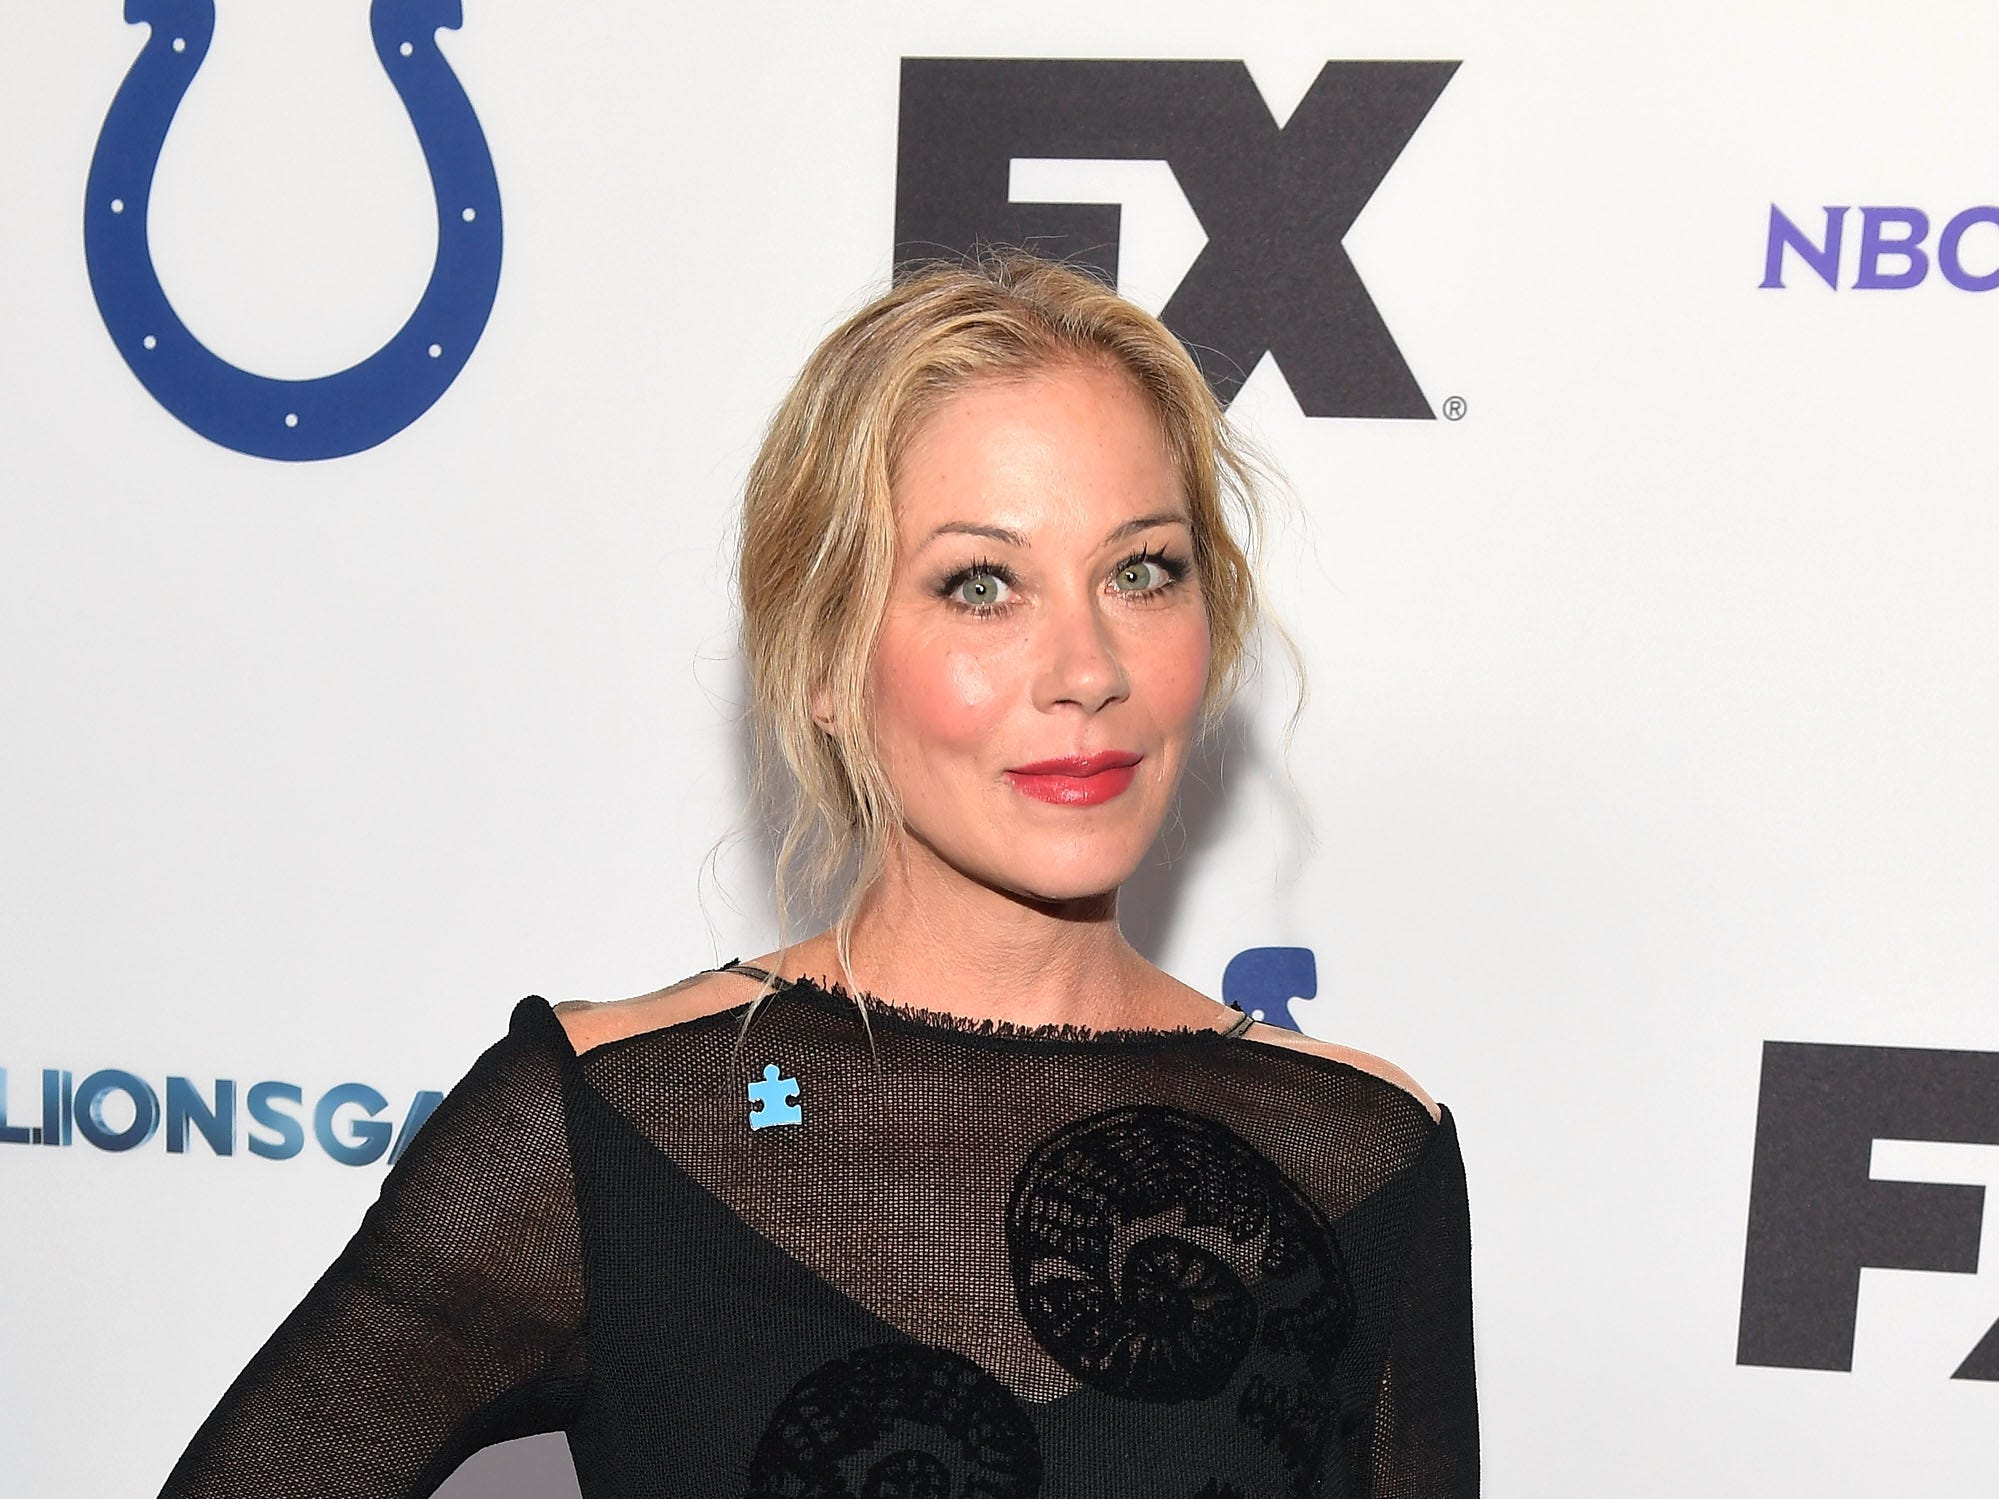 HOLLYWOOD, CA - APRIL 21:  Christina Applegate attends the 5th Annual Light Up the Blues Concert an Evening of Music to Benefit Autism Speaks at Dolby Theatre on April 21, 2018 in Hollywood, California.  (Photo by Matt Winkelmeyer/Getty Images) ORG XMIT: 775146903 ORIG FILE ID: 949839842